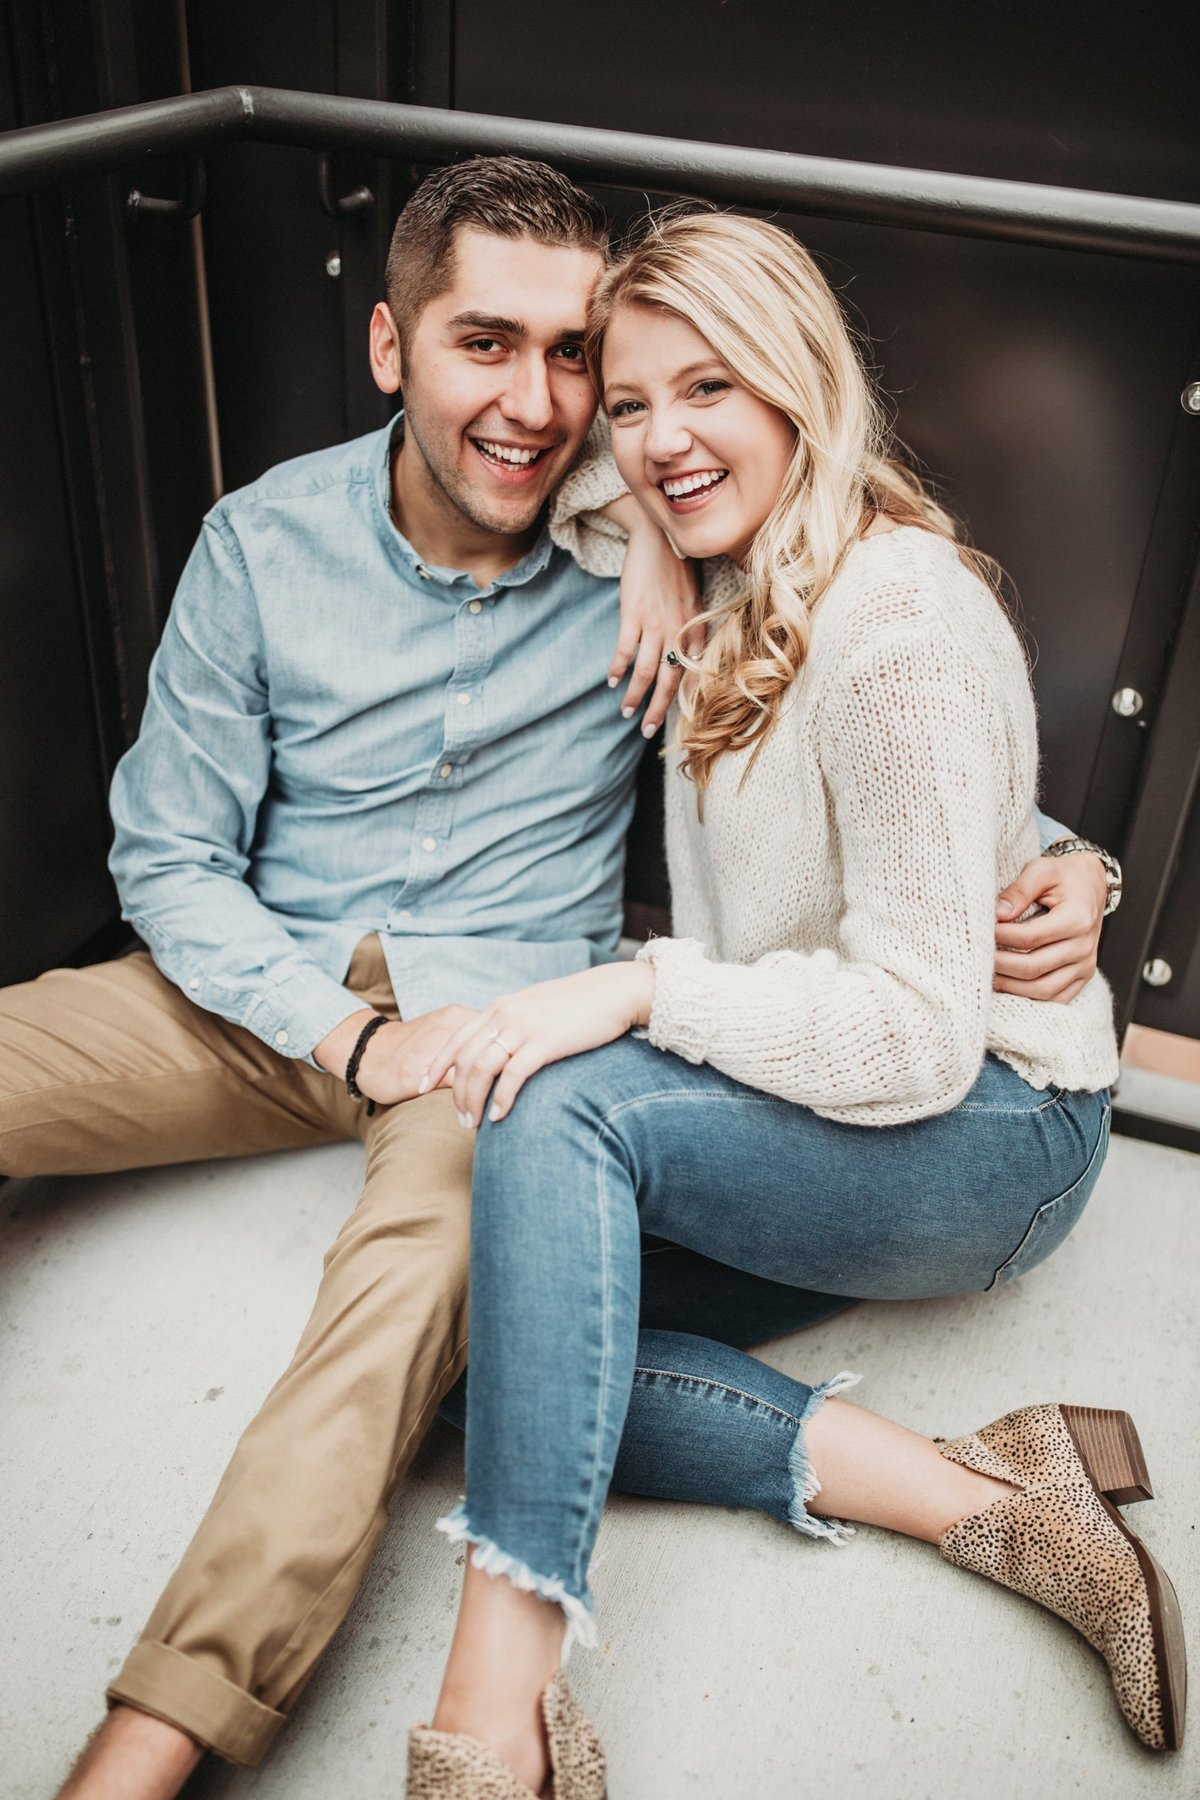 Kansas City Salt Lake City Destination Wedding Photographer_0224